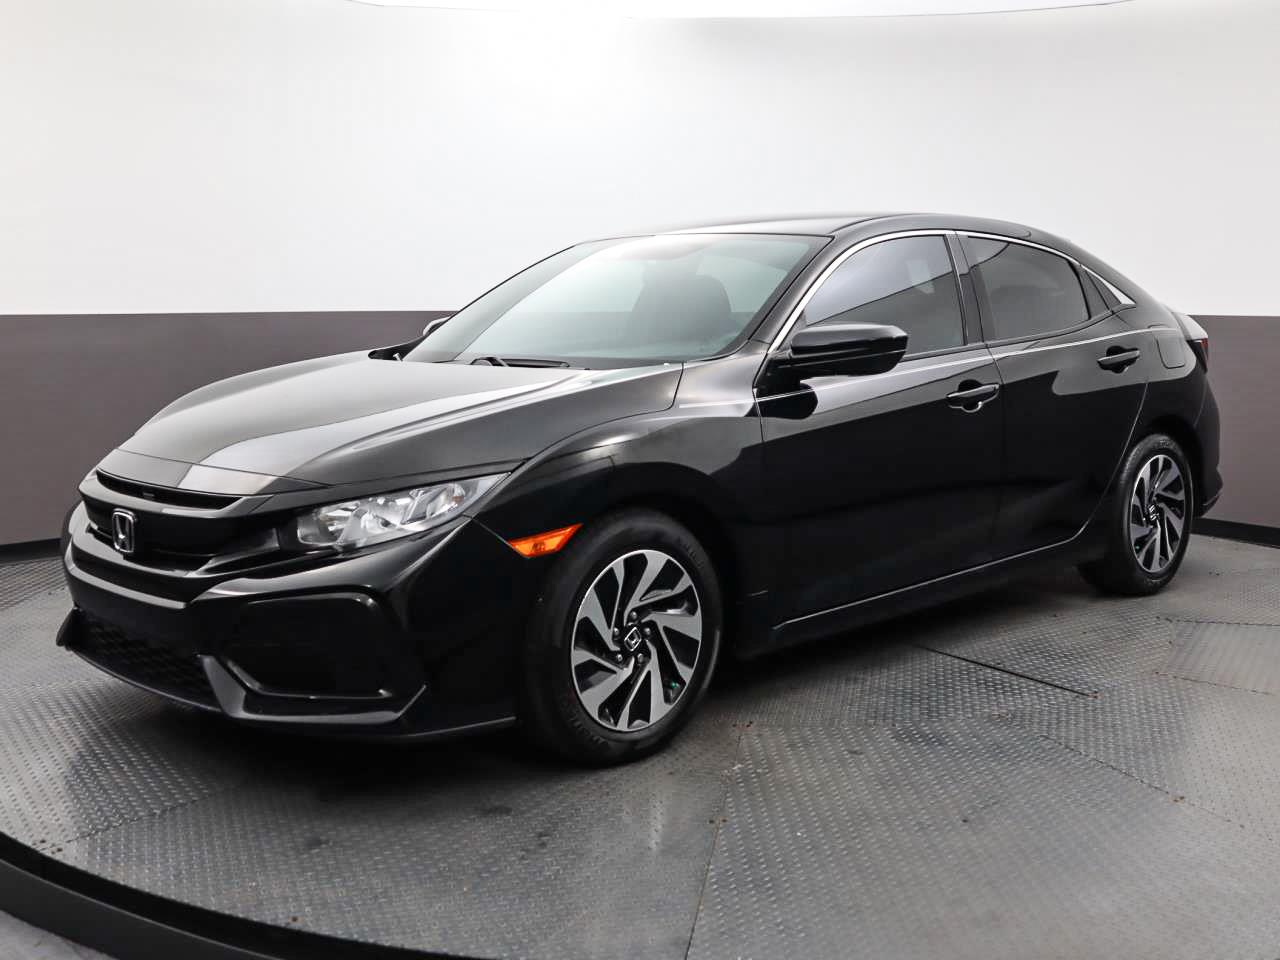 Used HONDA CIVIC-HATCHBACK 2019 MIAMI LX